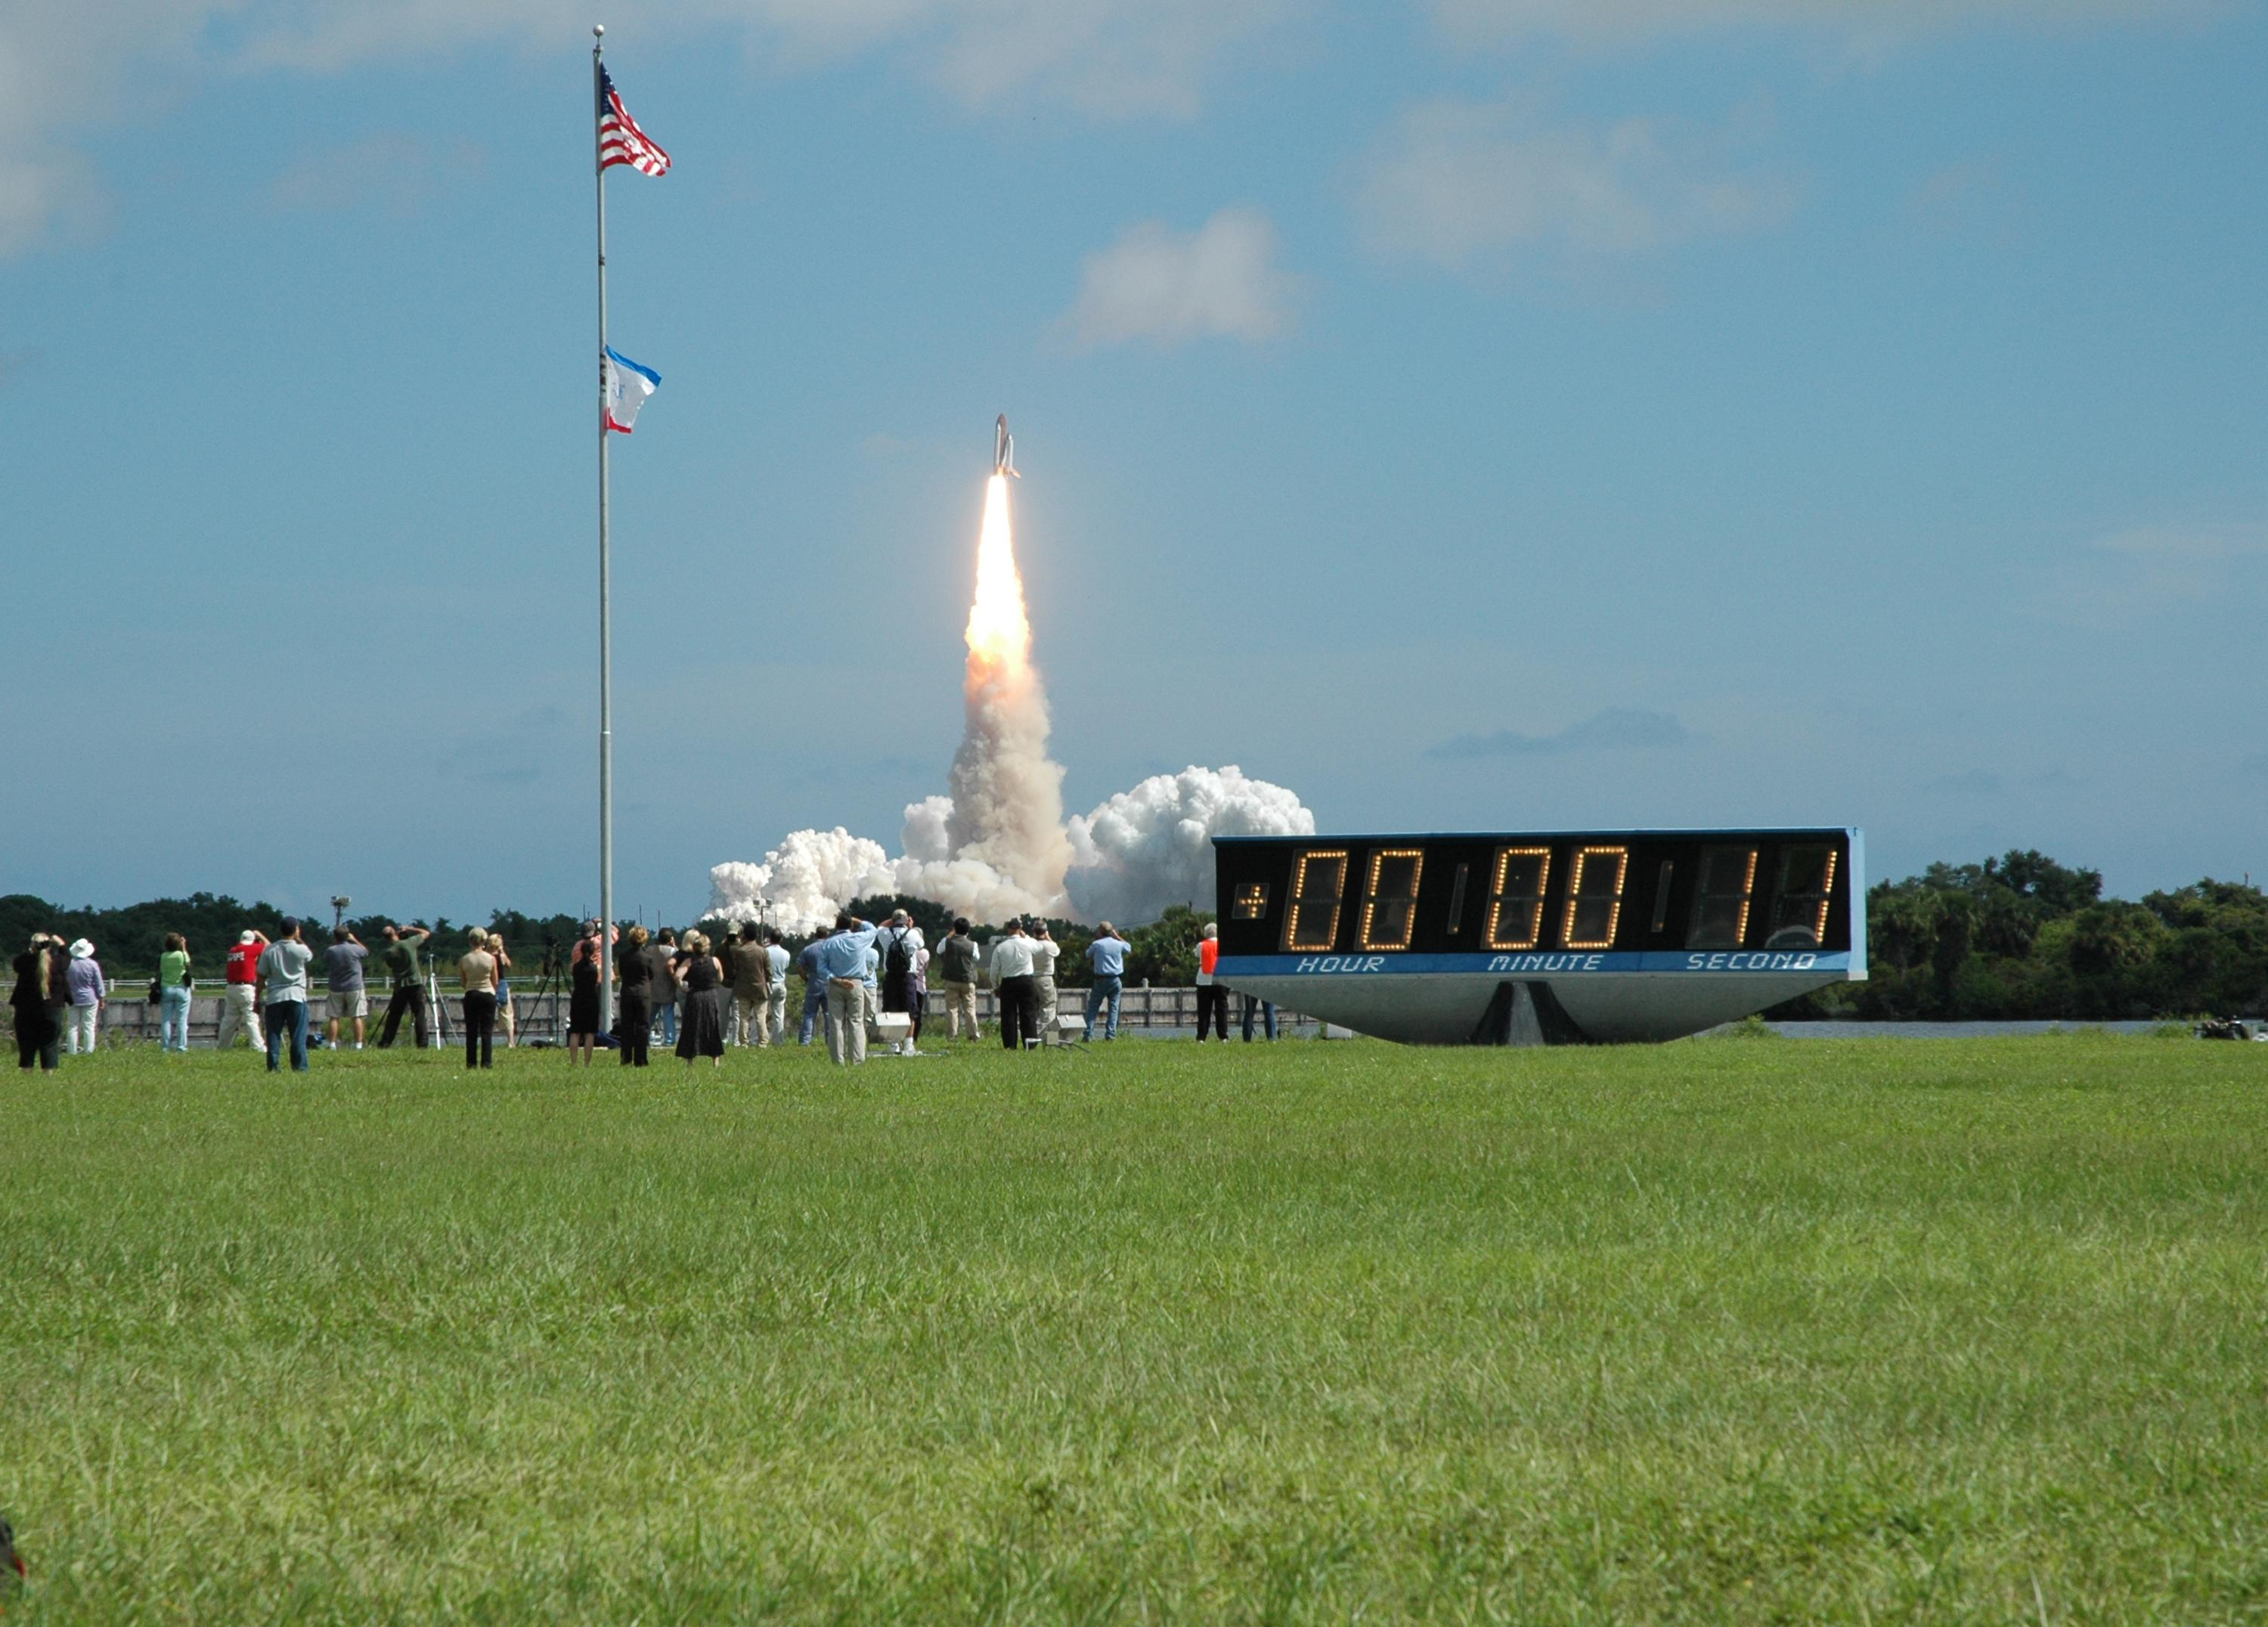 NASA - Counting Down to Launch